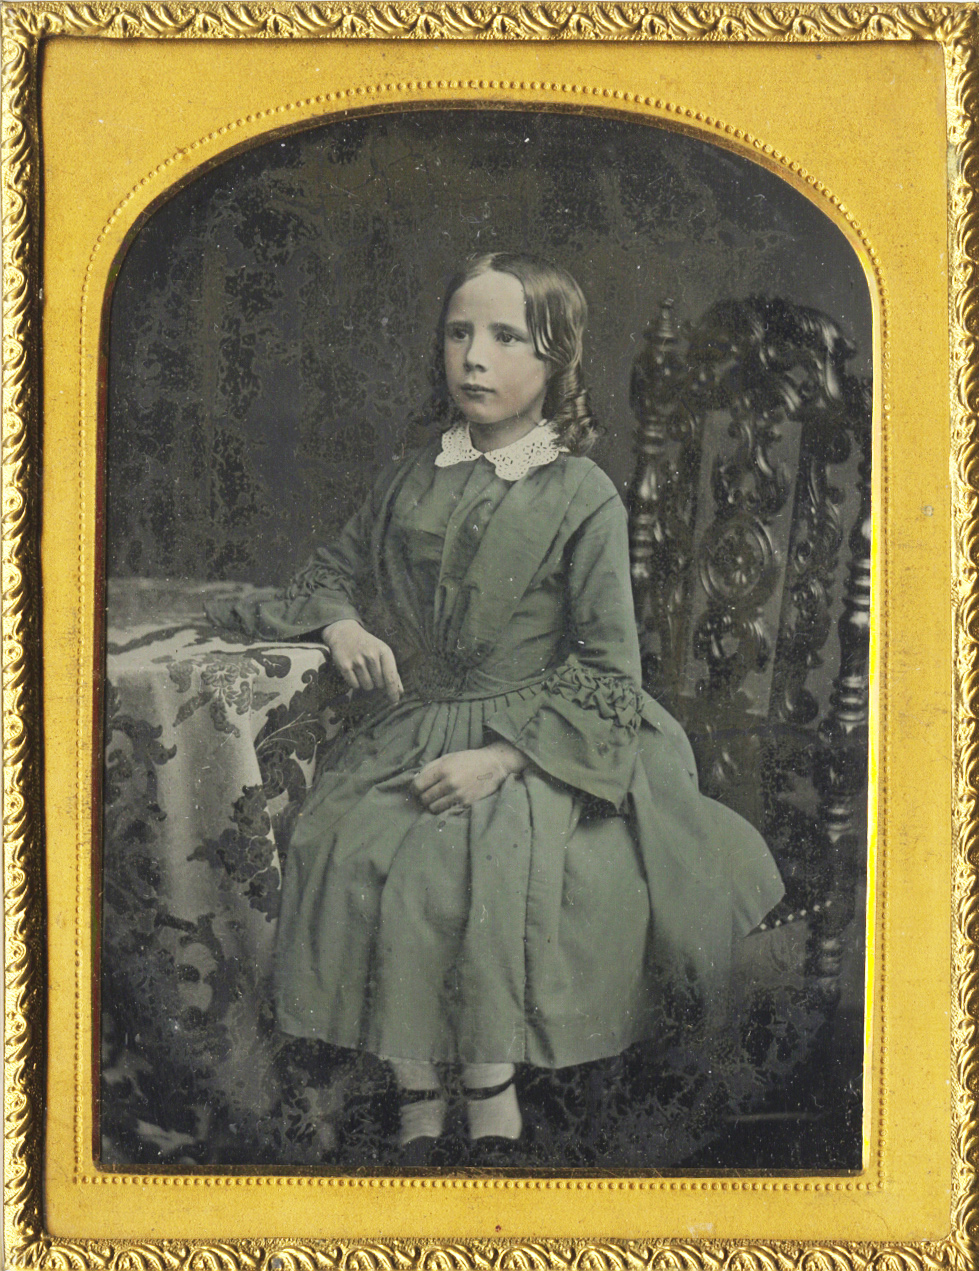 Portrait of a Seated Young Girl in Dress with Lace Collar